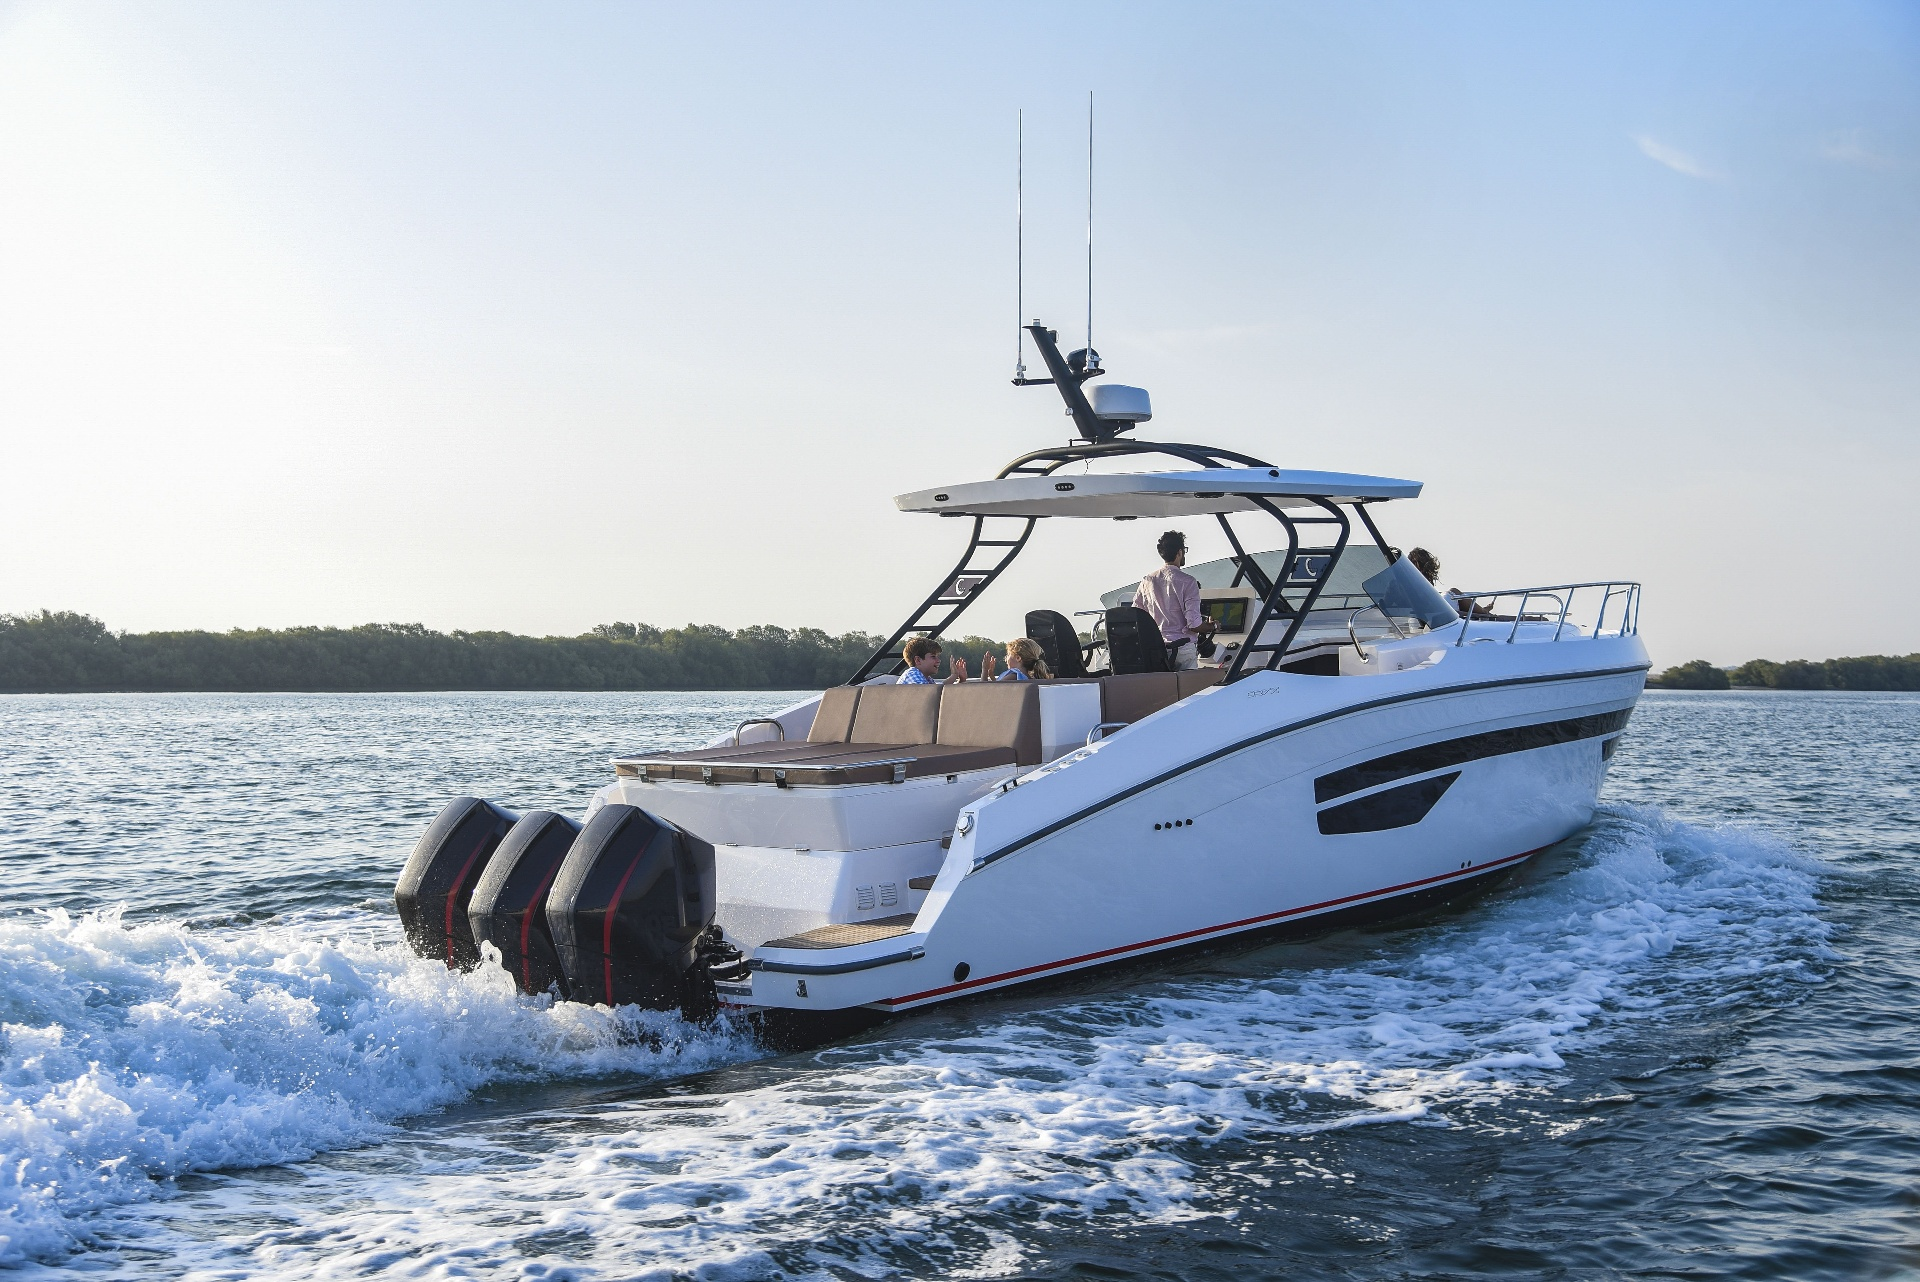 Oryx 379 - merging power & performance with exceptional styling